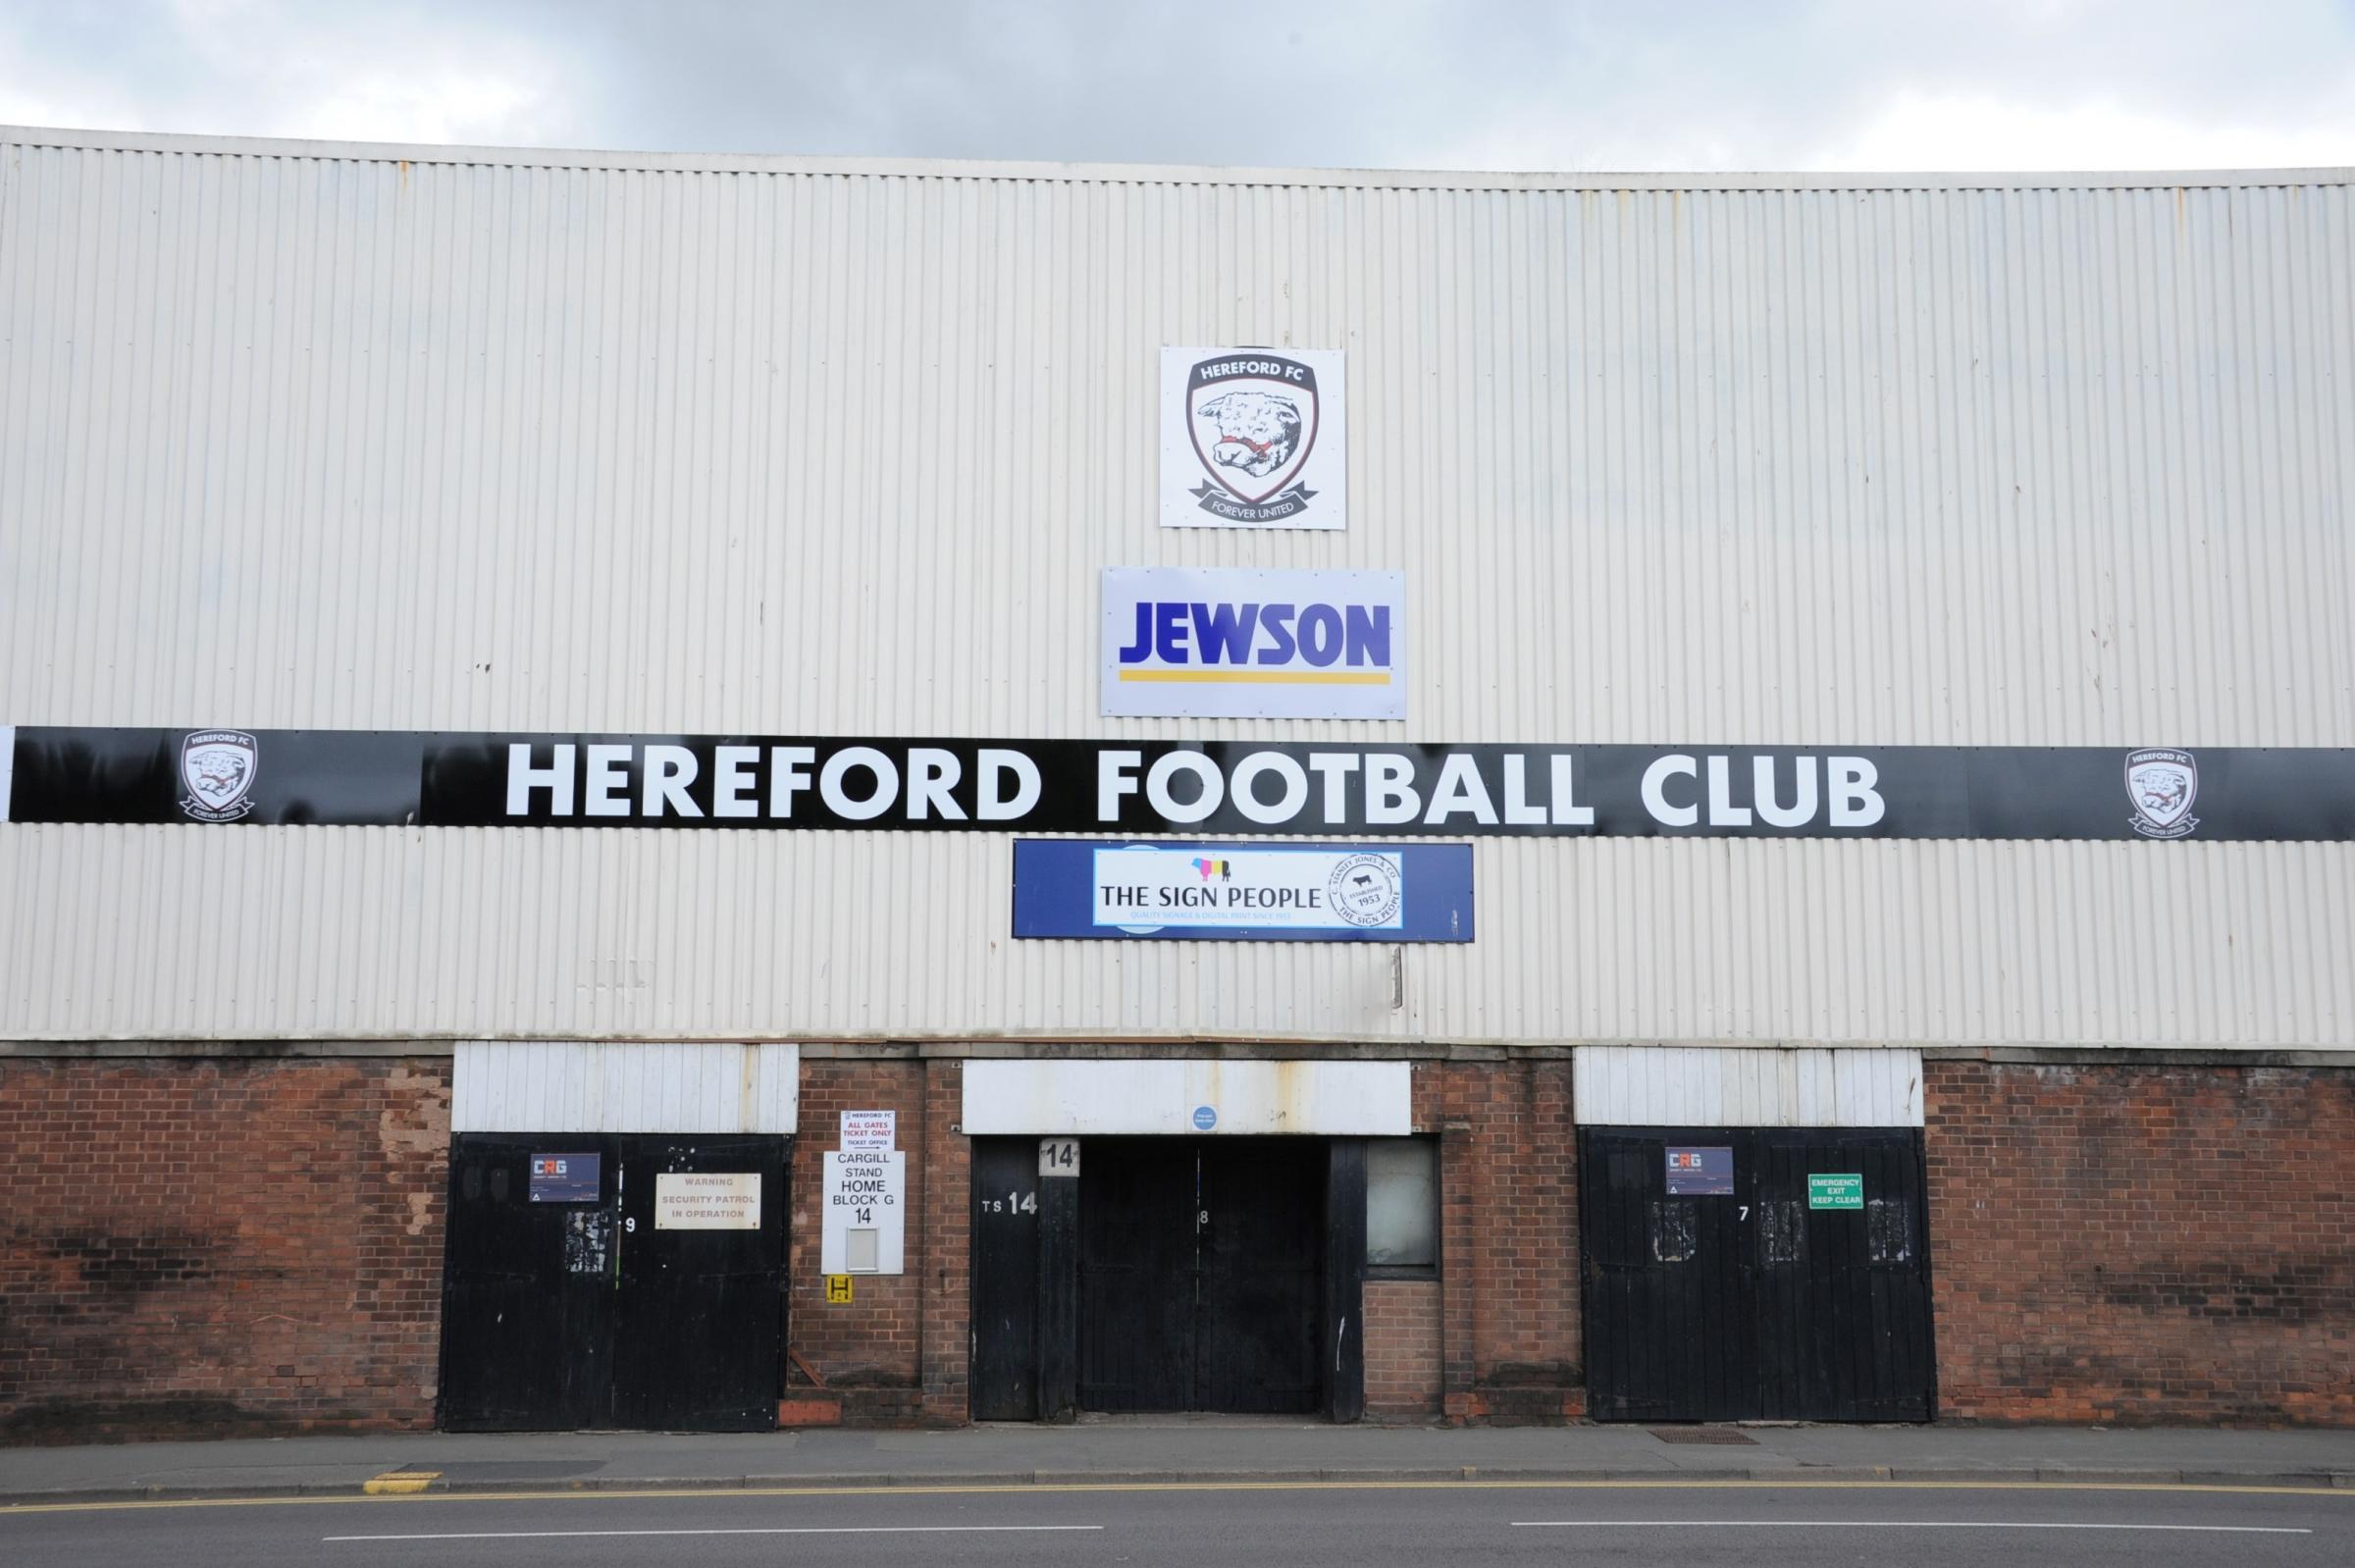 Hereford have confirmed the dates for their matches against St Neots and Ewyas Harold